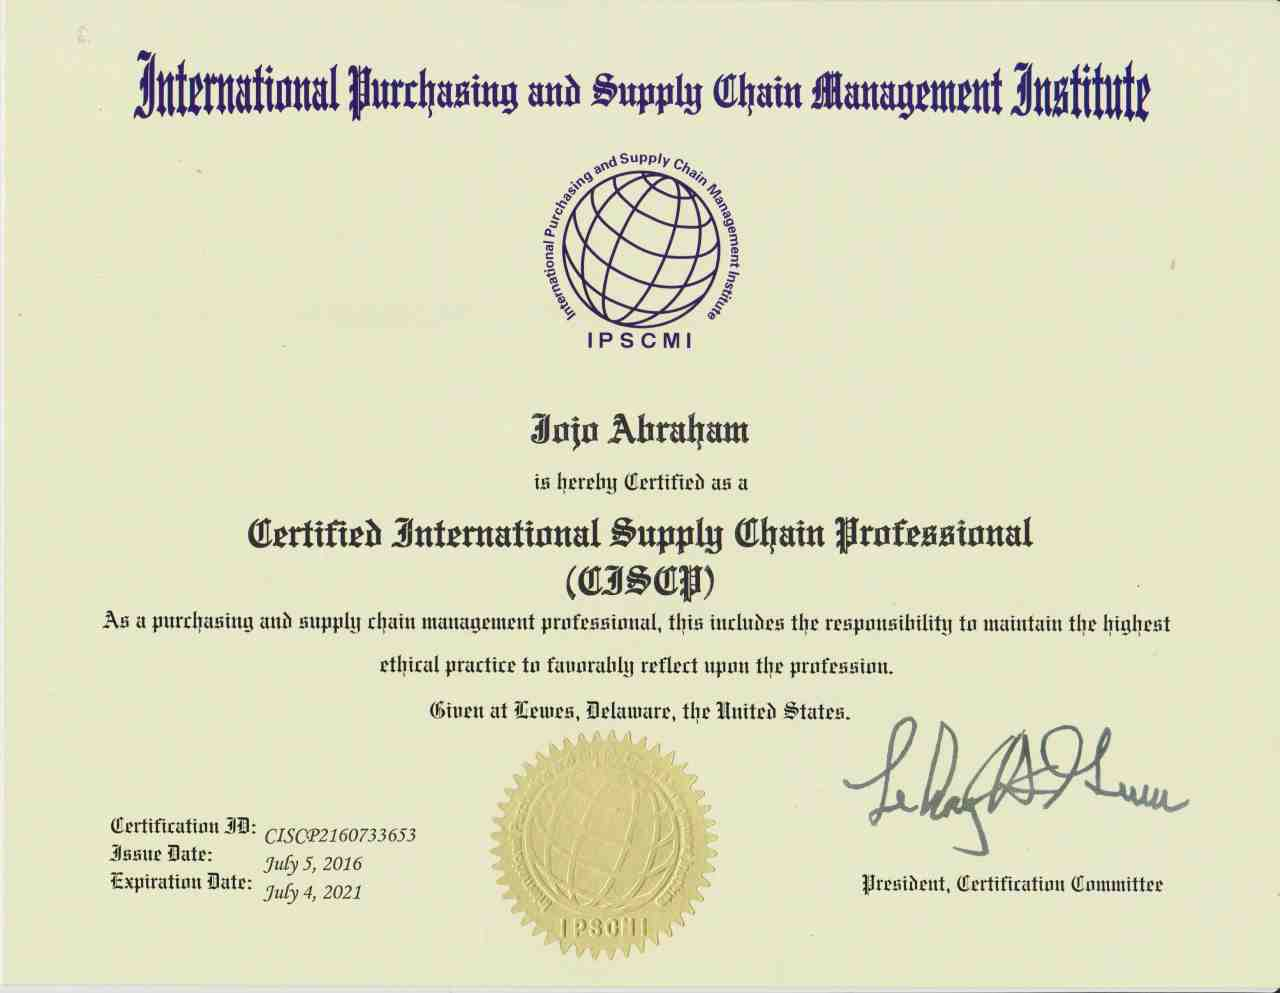 Jojo abraham bayt certified international supply chain professional ciscp certification id ciscp2160733653 from international purchase and supply chain management xflitez Image collections